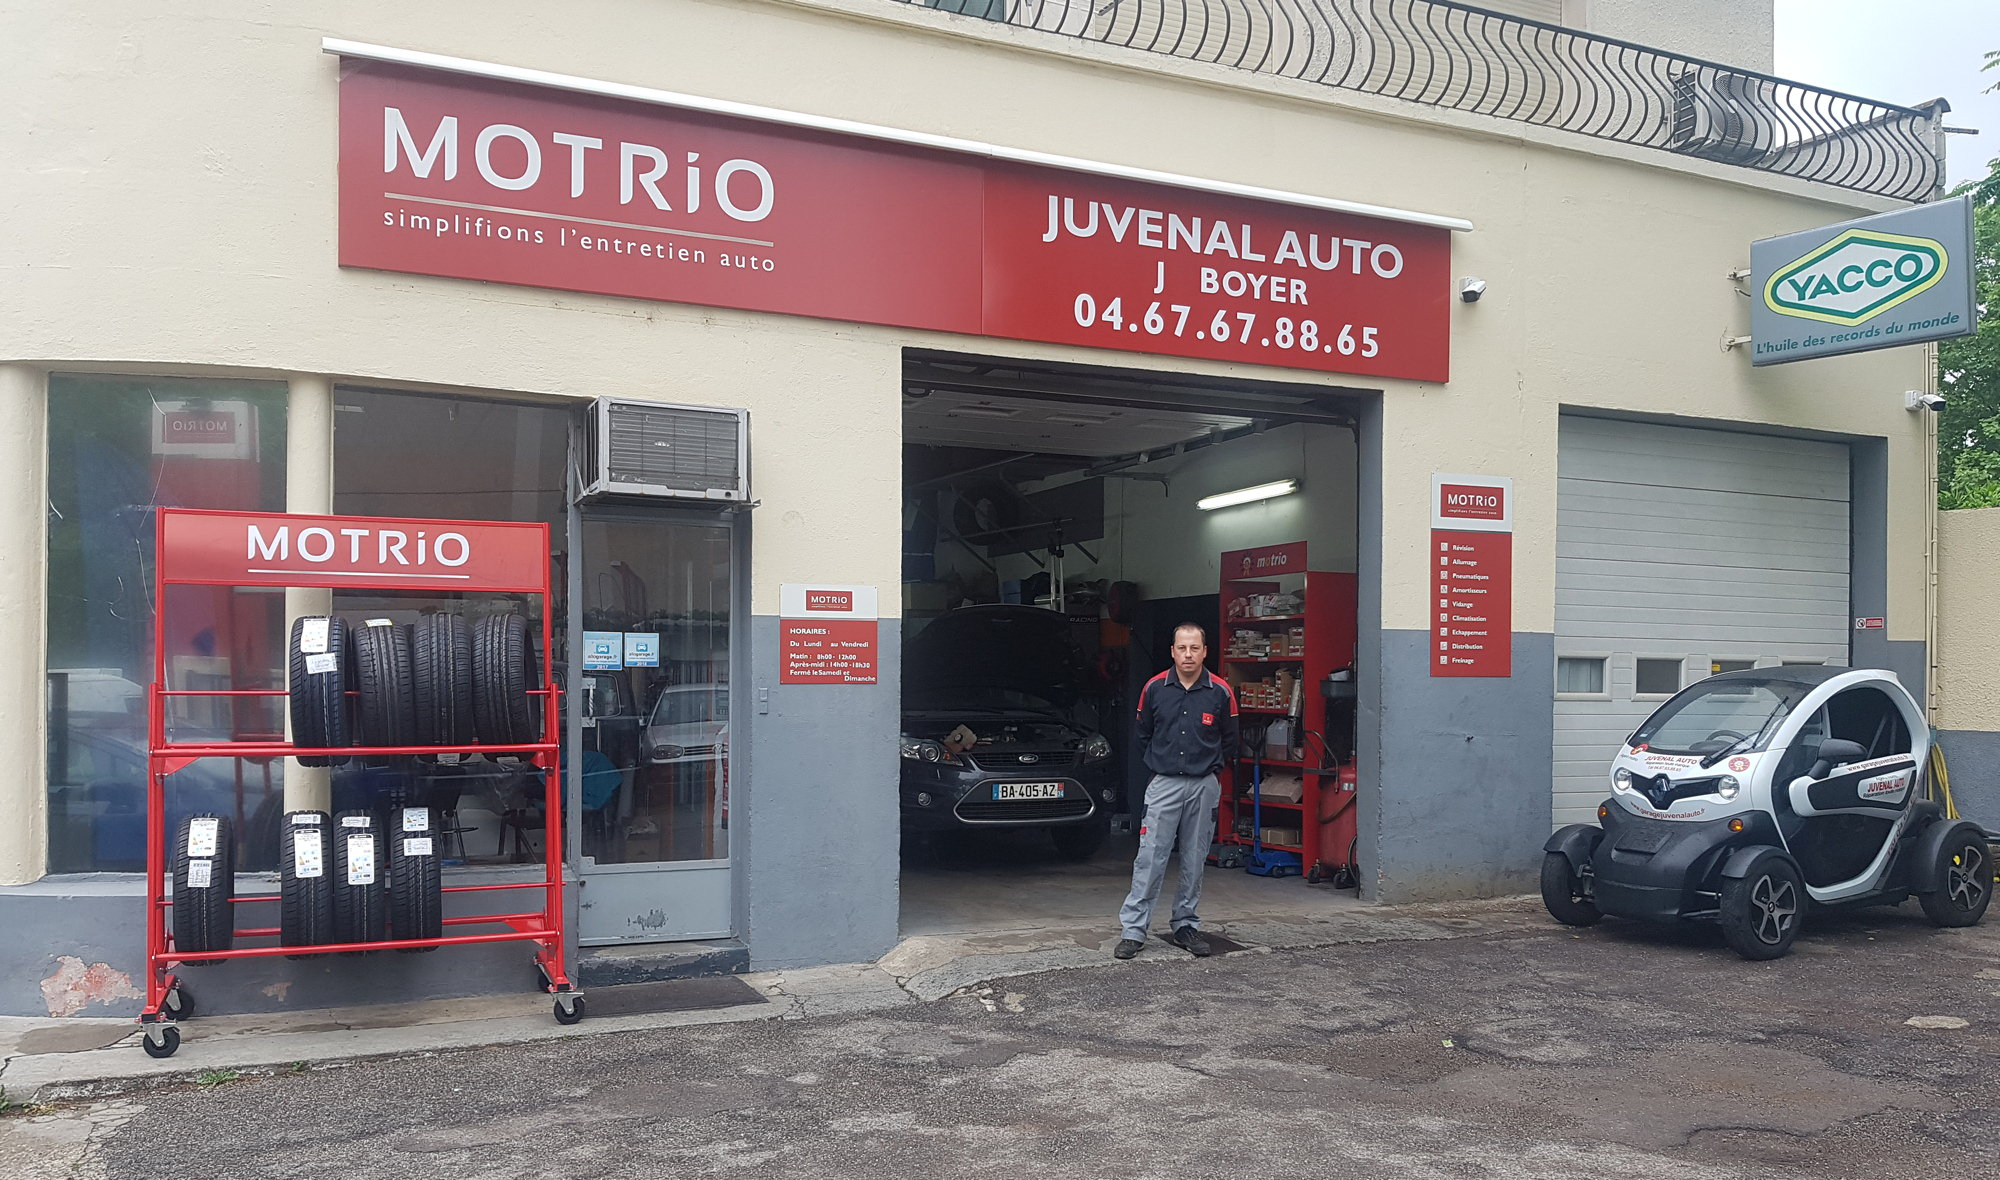 photo JUVENAL AUTO